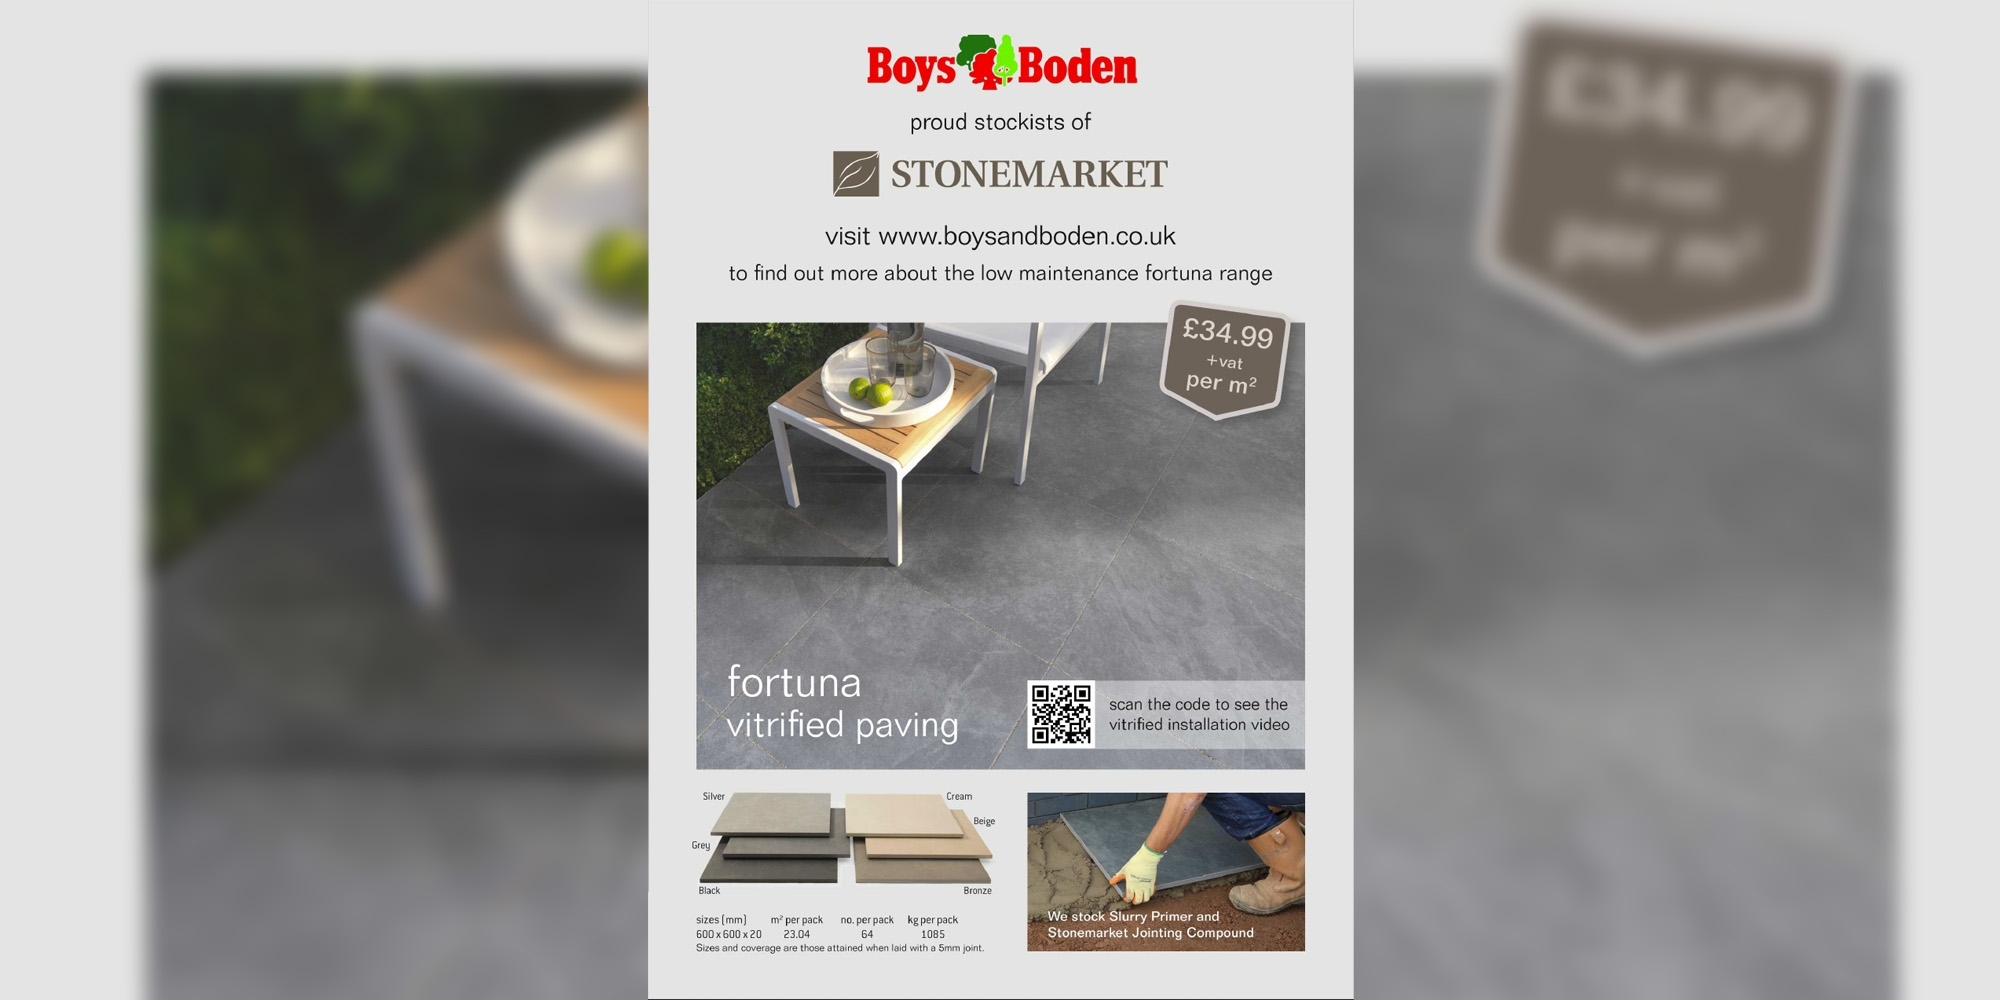 paving deal, special offer, cheap paving, stonemarket, stone slabs